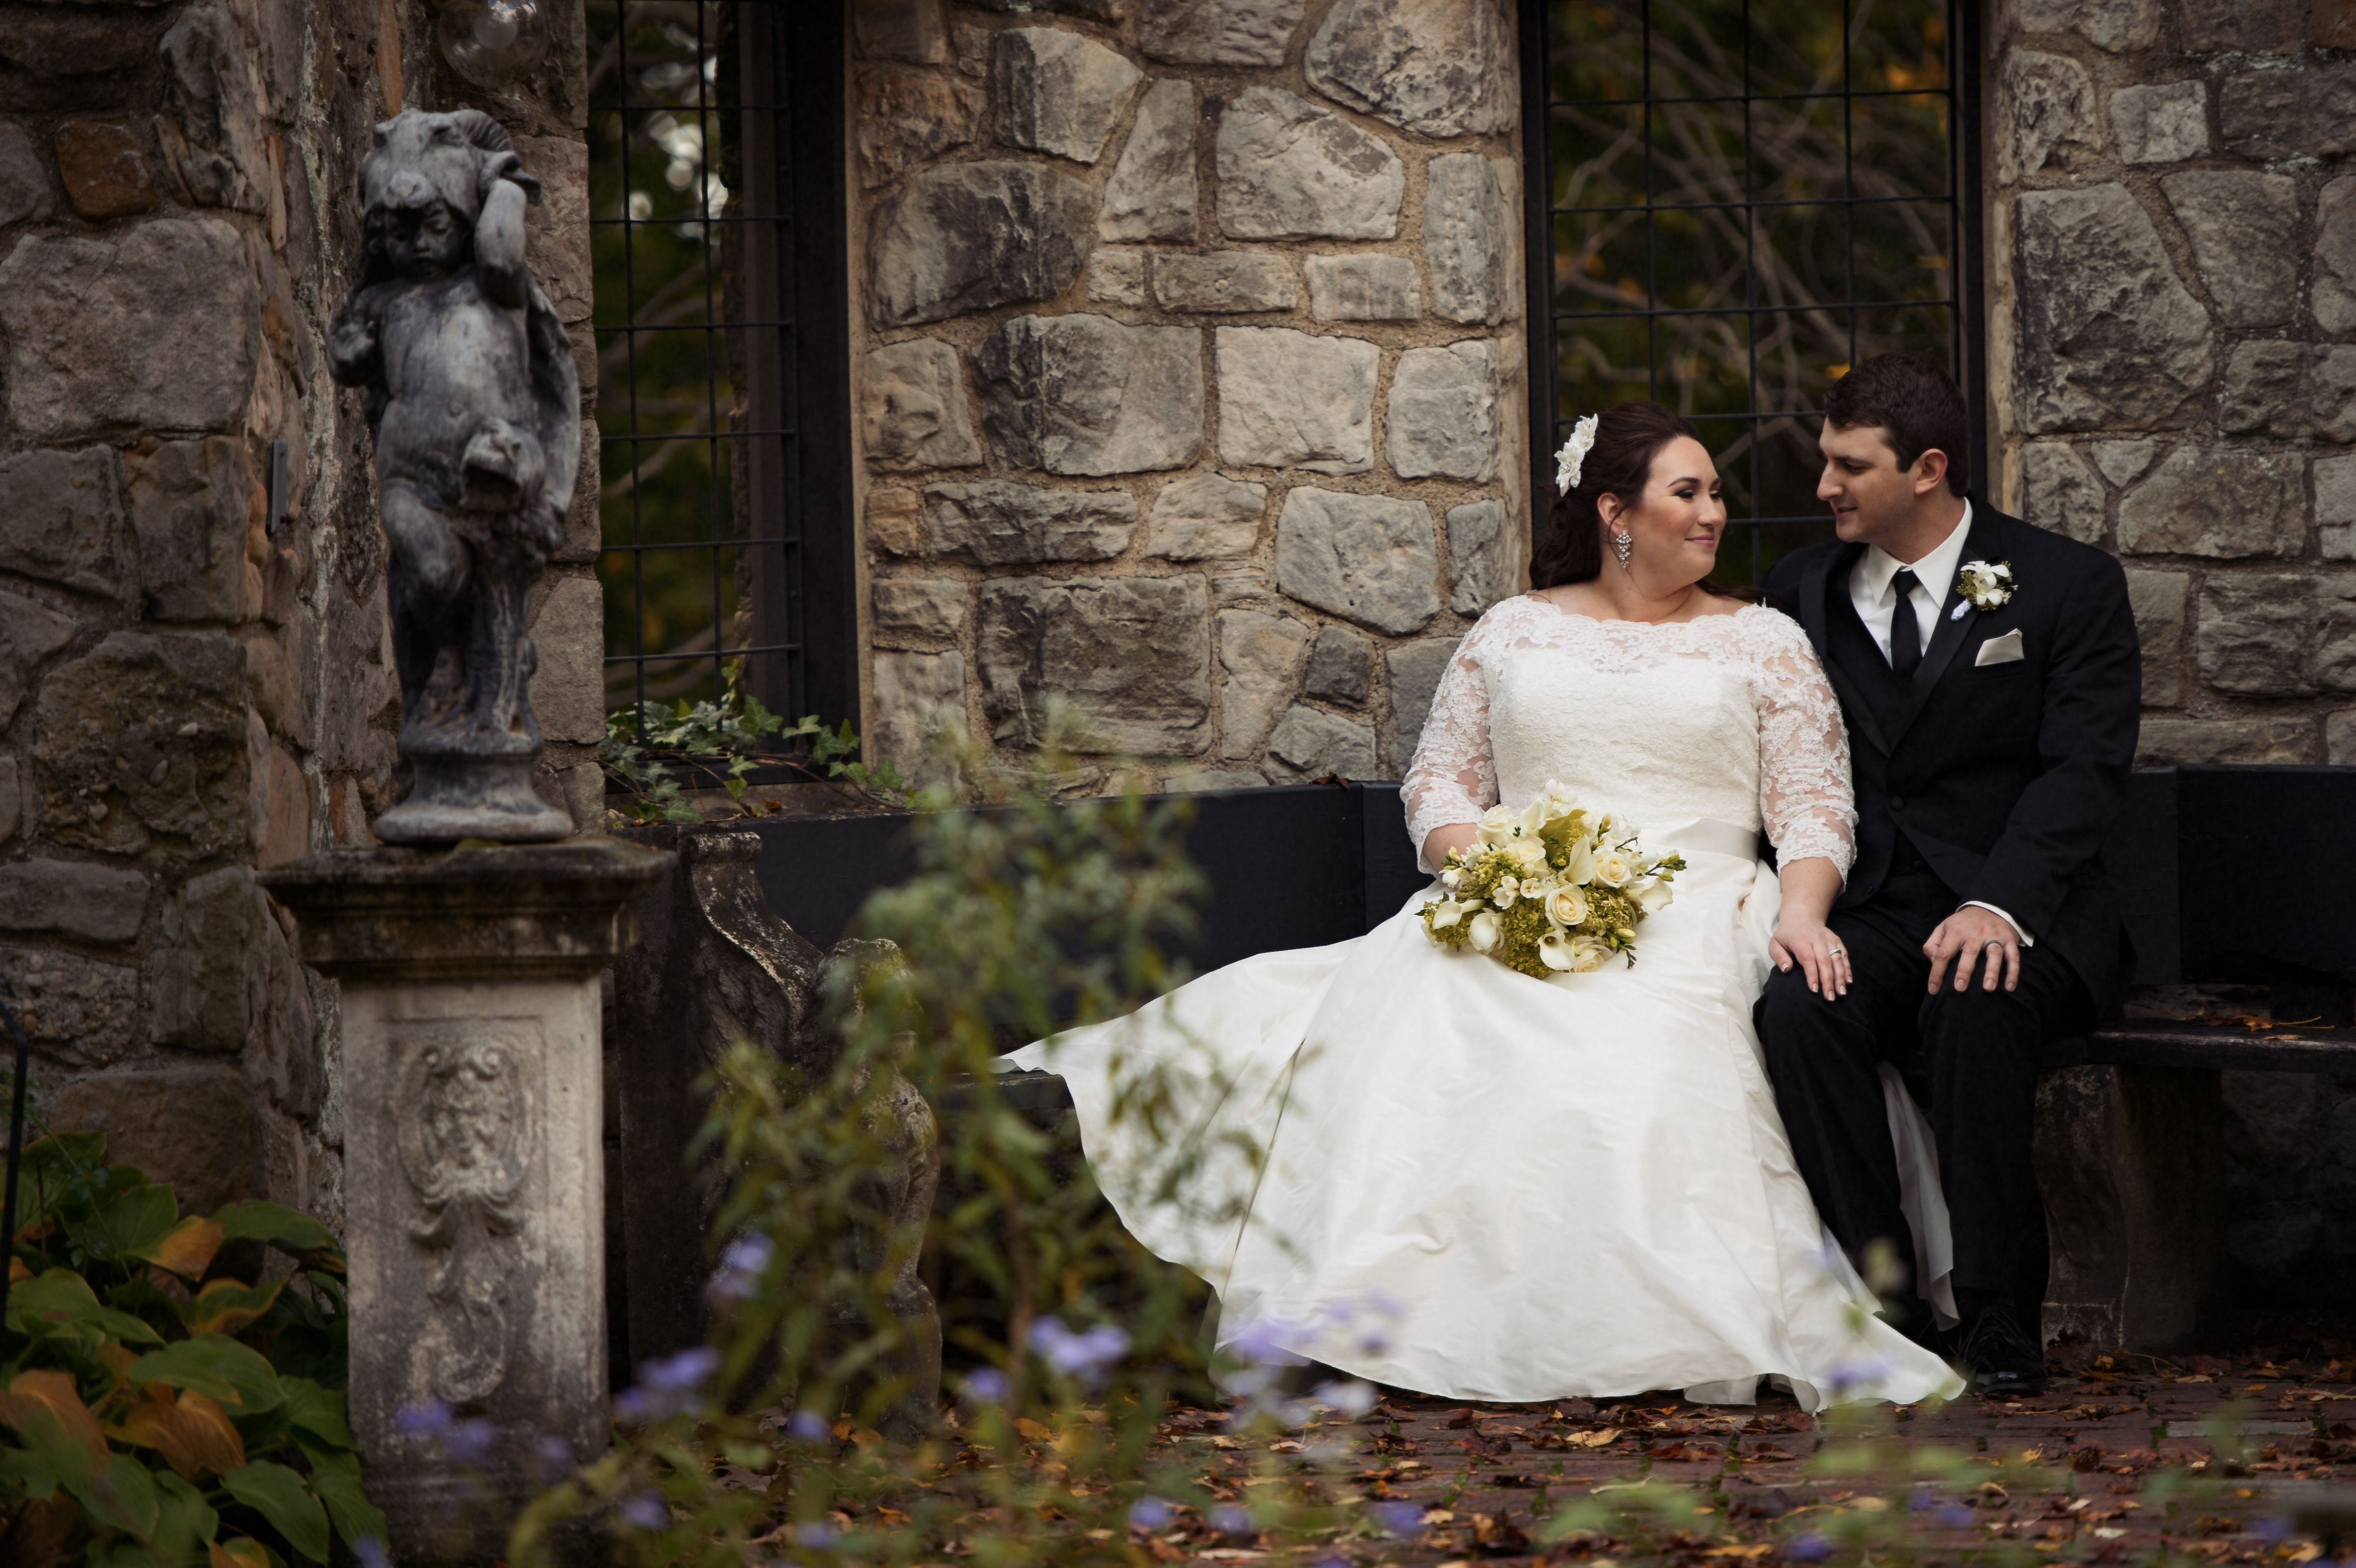 Stan Hywet Hall Gardens Encompasses 70 Acres Of Gardens And Grounds That Can Provide A Stunning And Unique Setting Wedding Ceremony Wedding Schedule Ceremony